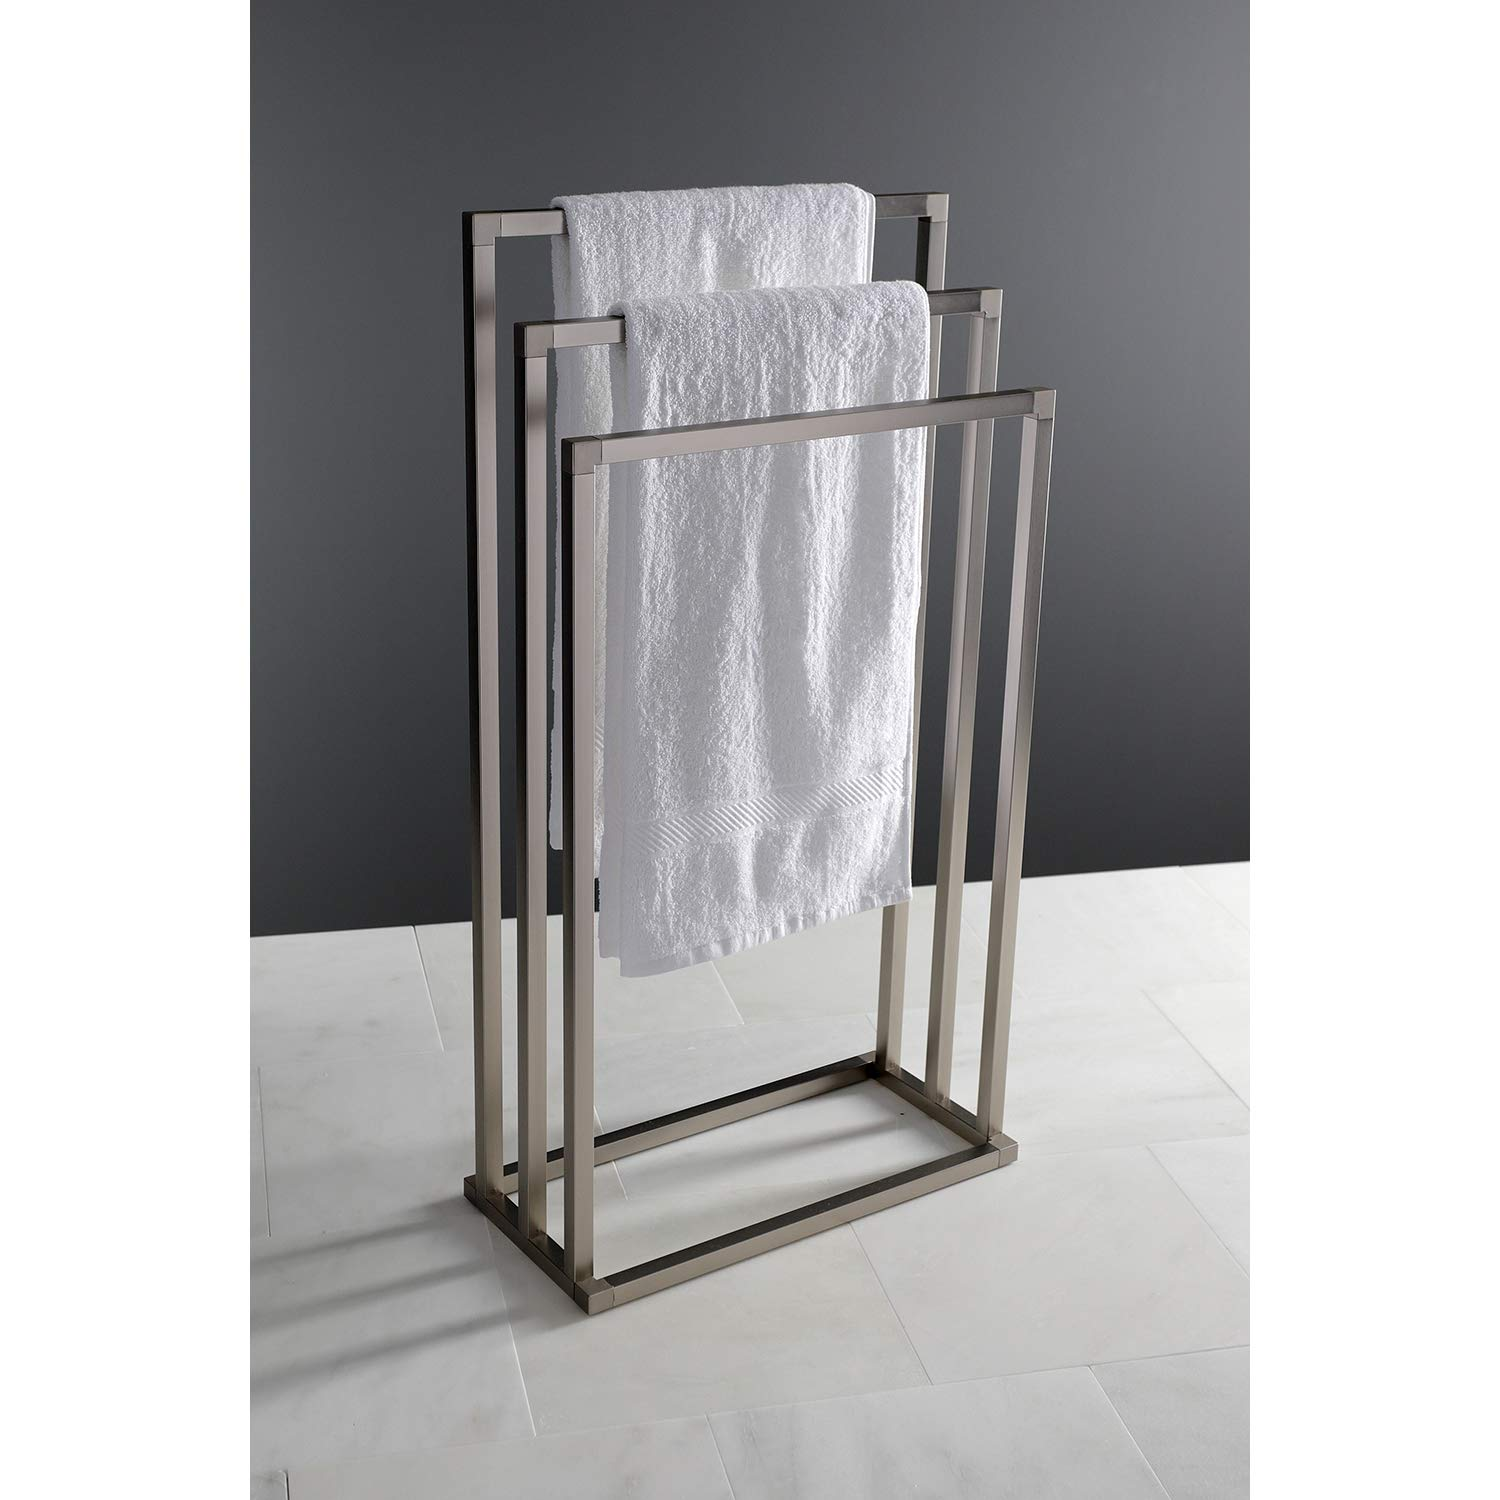 Kingston Brass SCC8338 Edenscape 3-Tier Pedestal Towel Rack Brushed Nickel